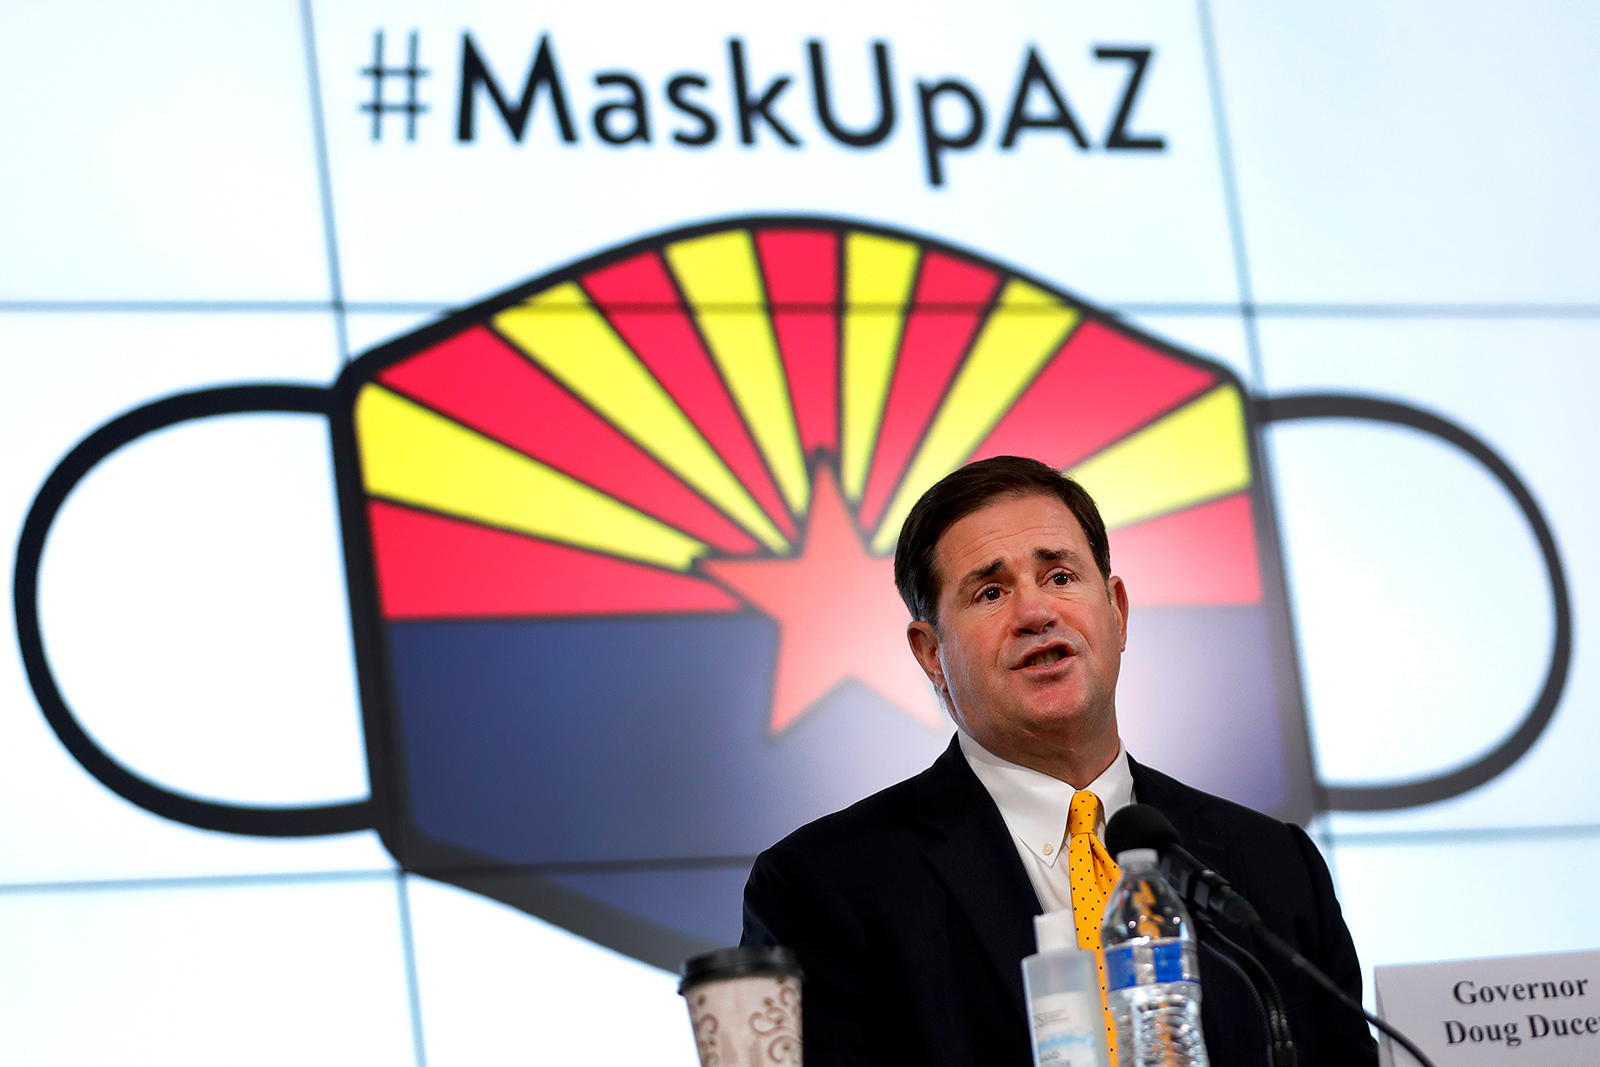 Arizona Gov. Doug Ducey gives an update on the state's efforts to combat the coronavirus pandemic at a press conference in Phoenix on Thursday, July 23.